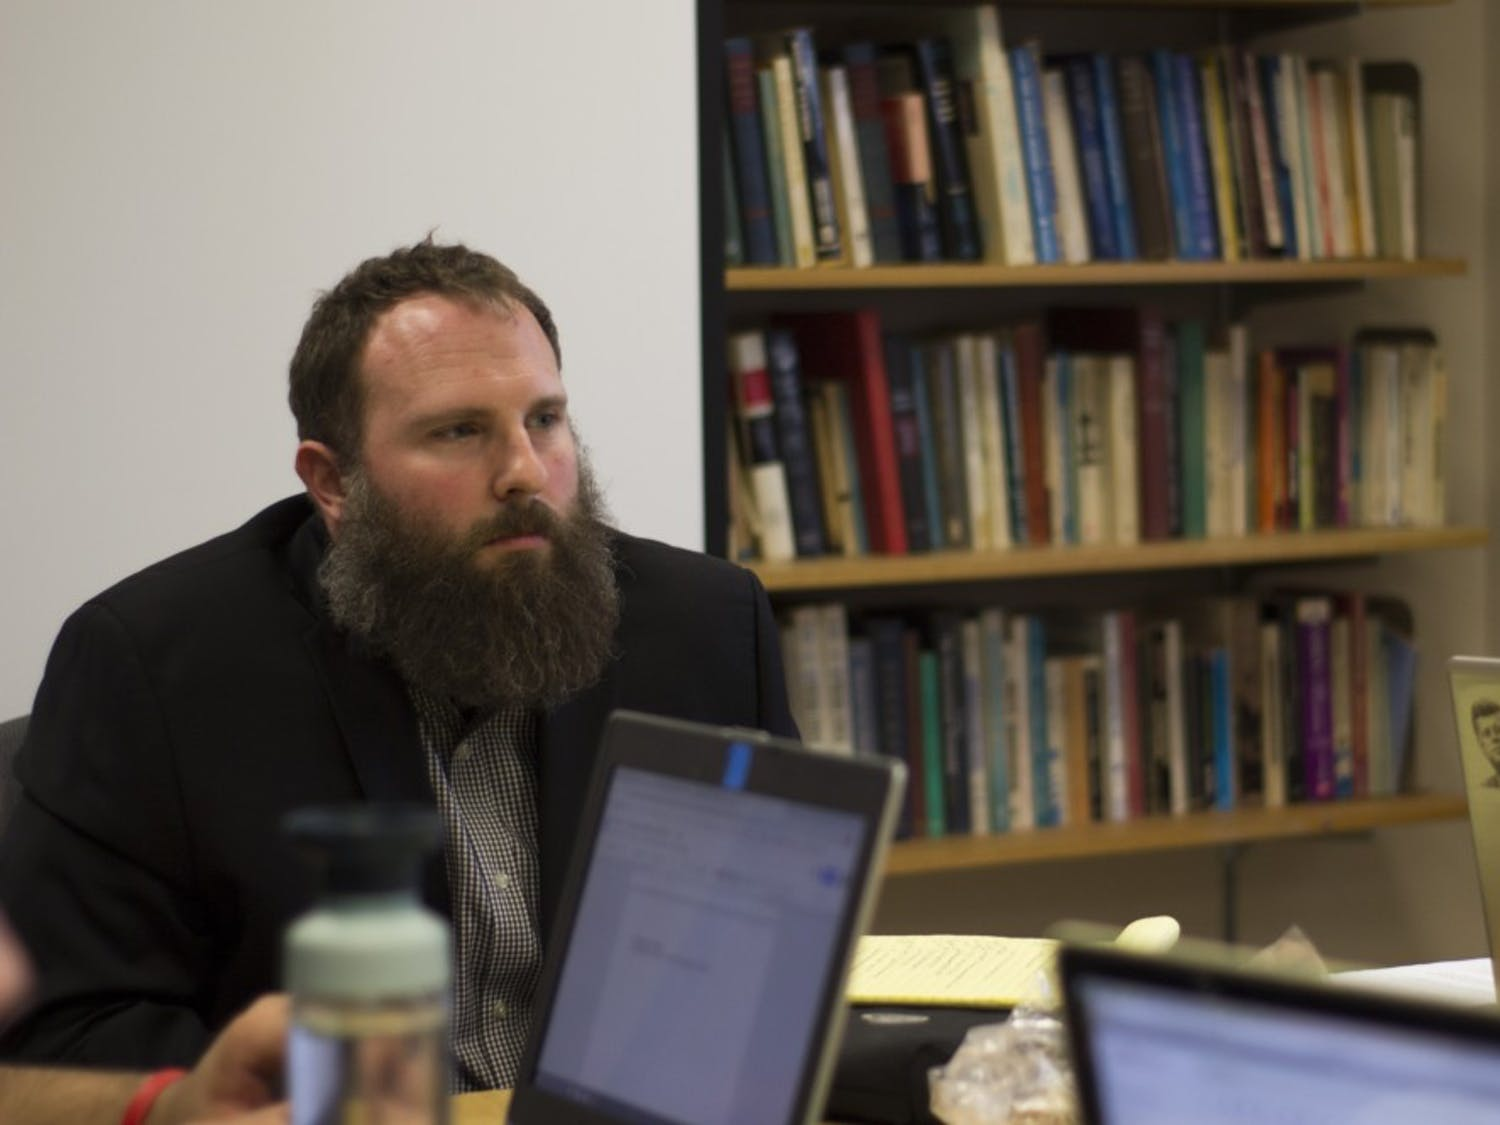 Professor Jacob Neiheisel has grown a political science career beyond academia at UB, regularly appearing on MSNBC as well as most recently Time online.